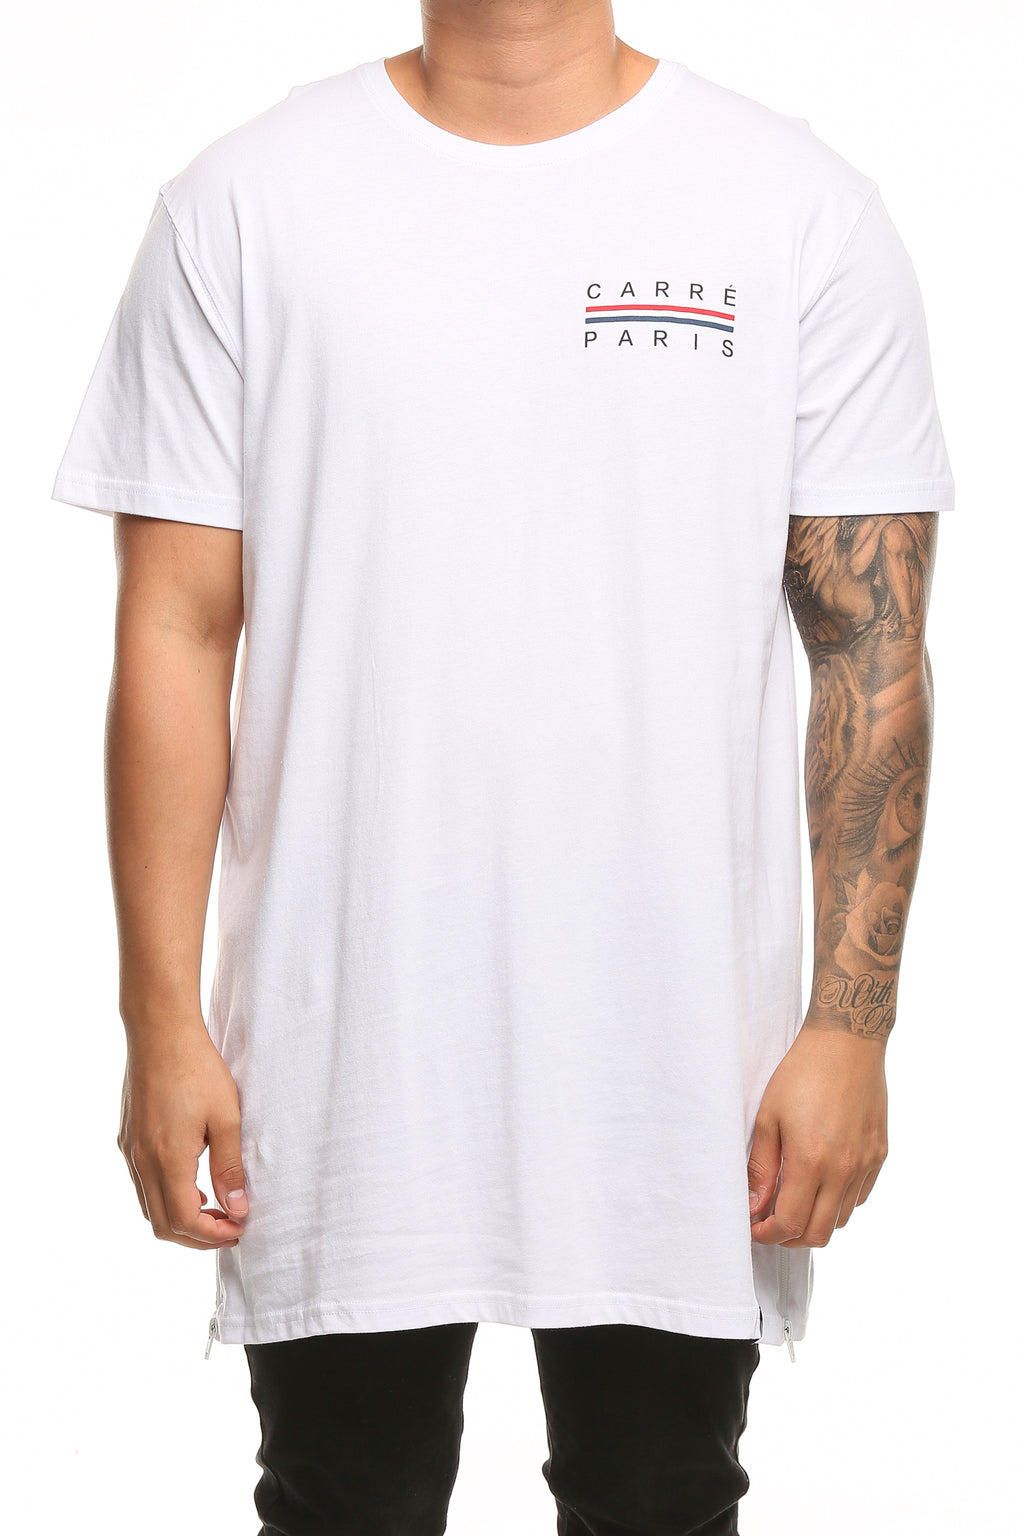 Carré Bannerol Capone SS 3 Tee White